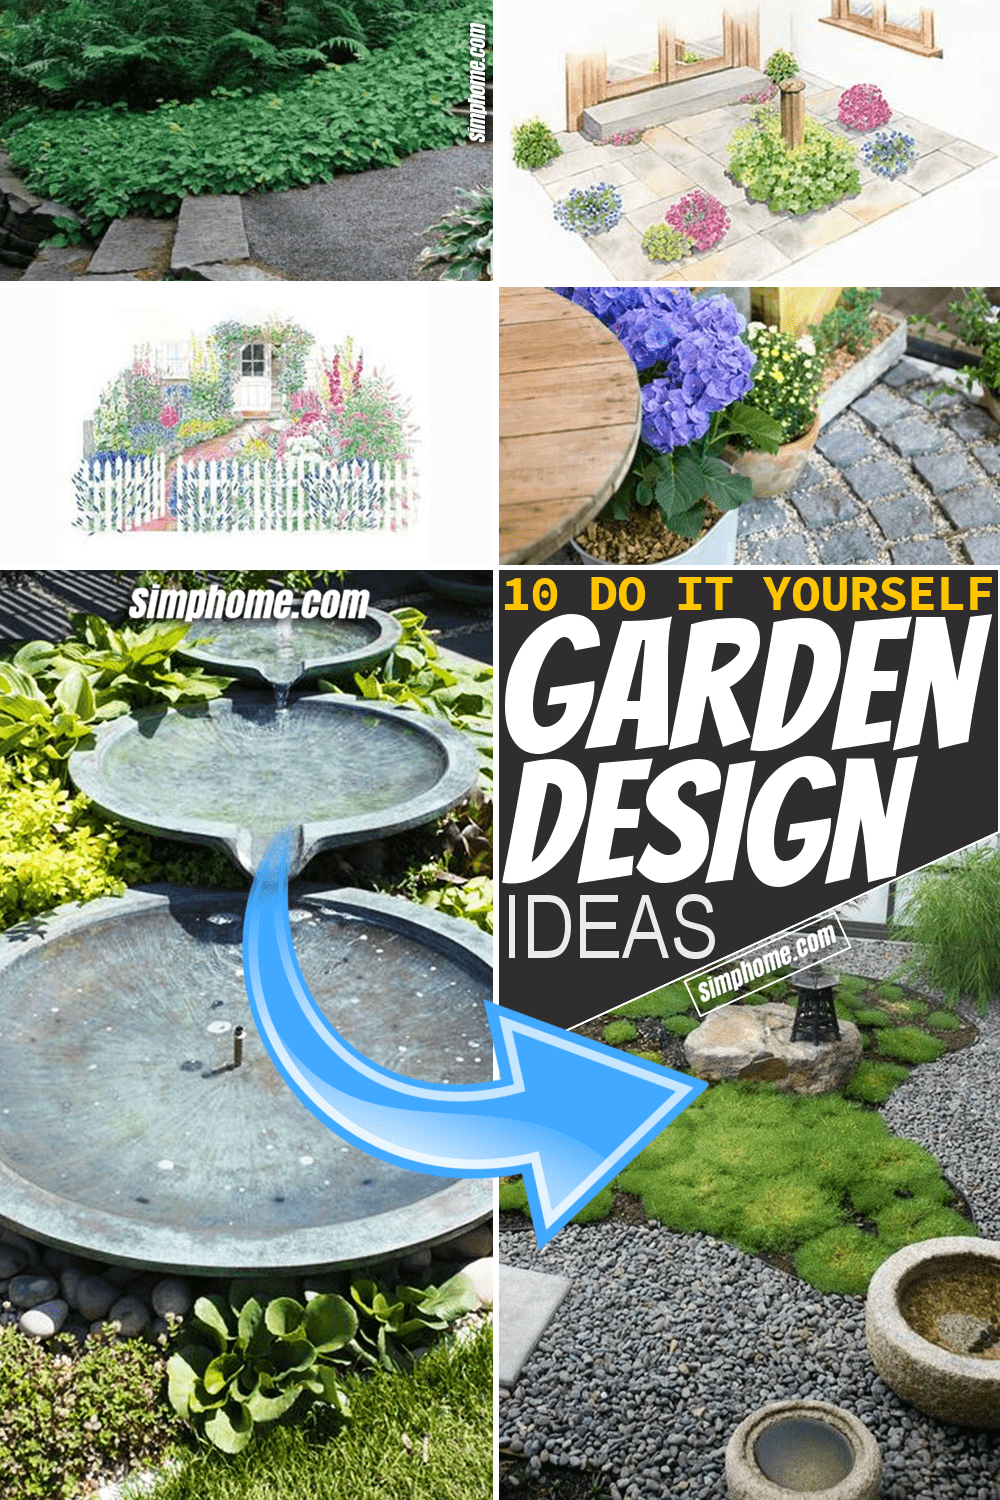 Simphome.com 10 Garden Design Plans Long Pinterest Image